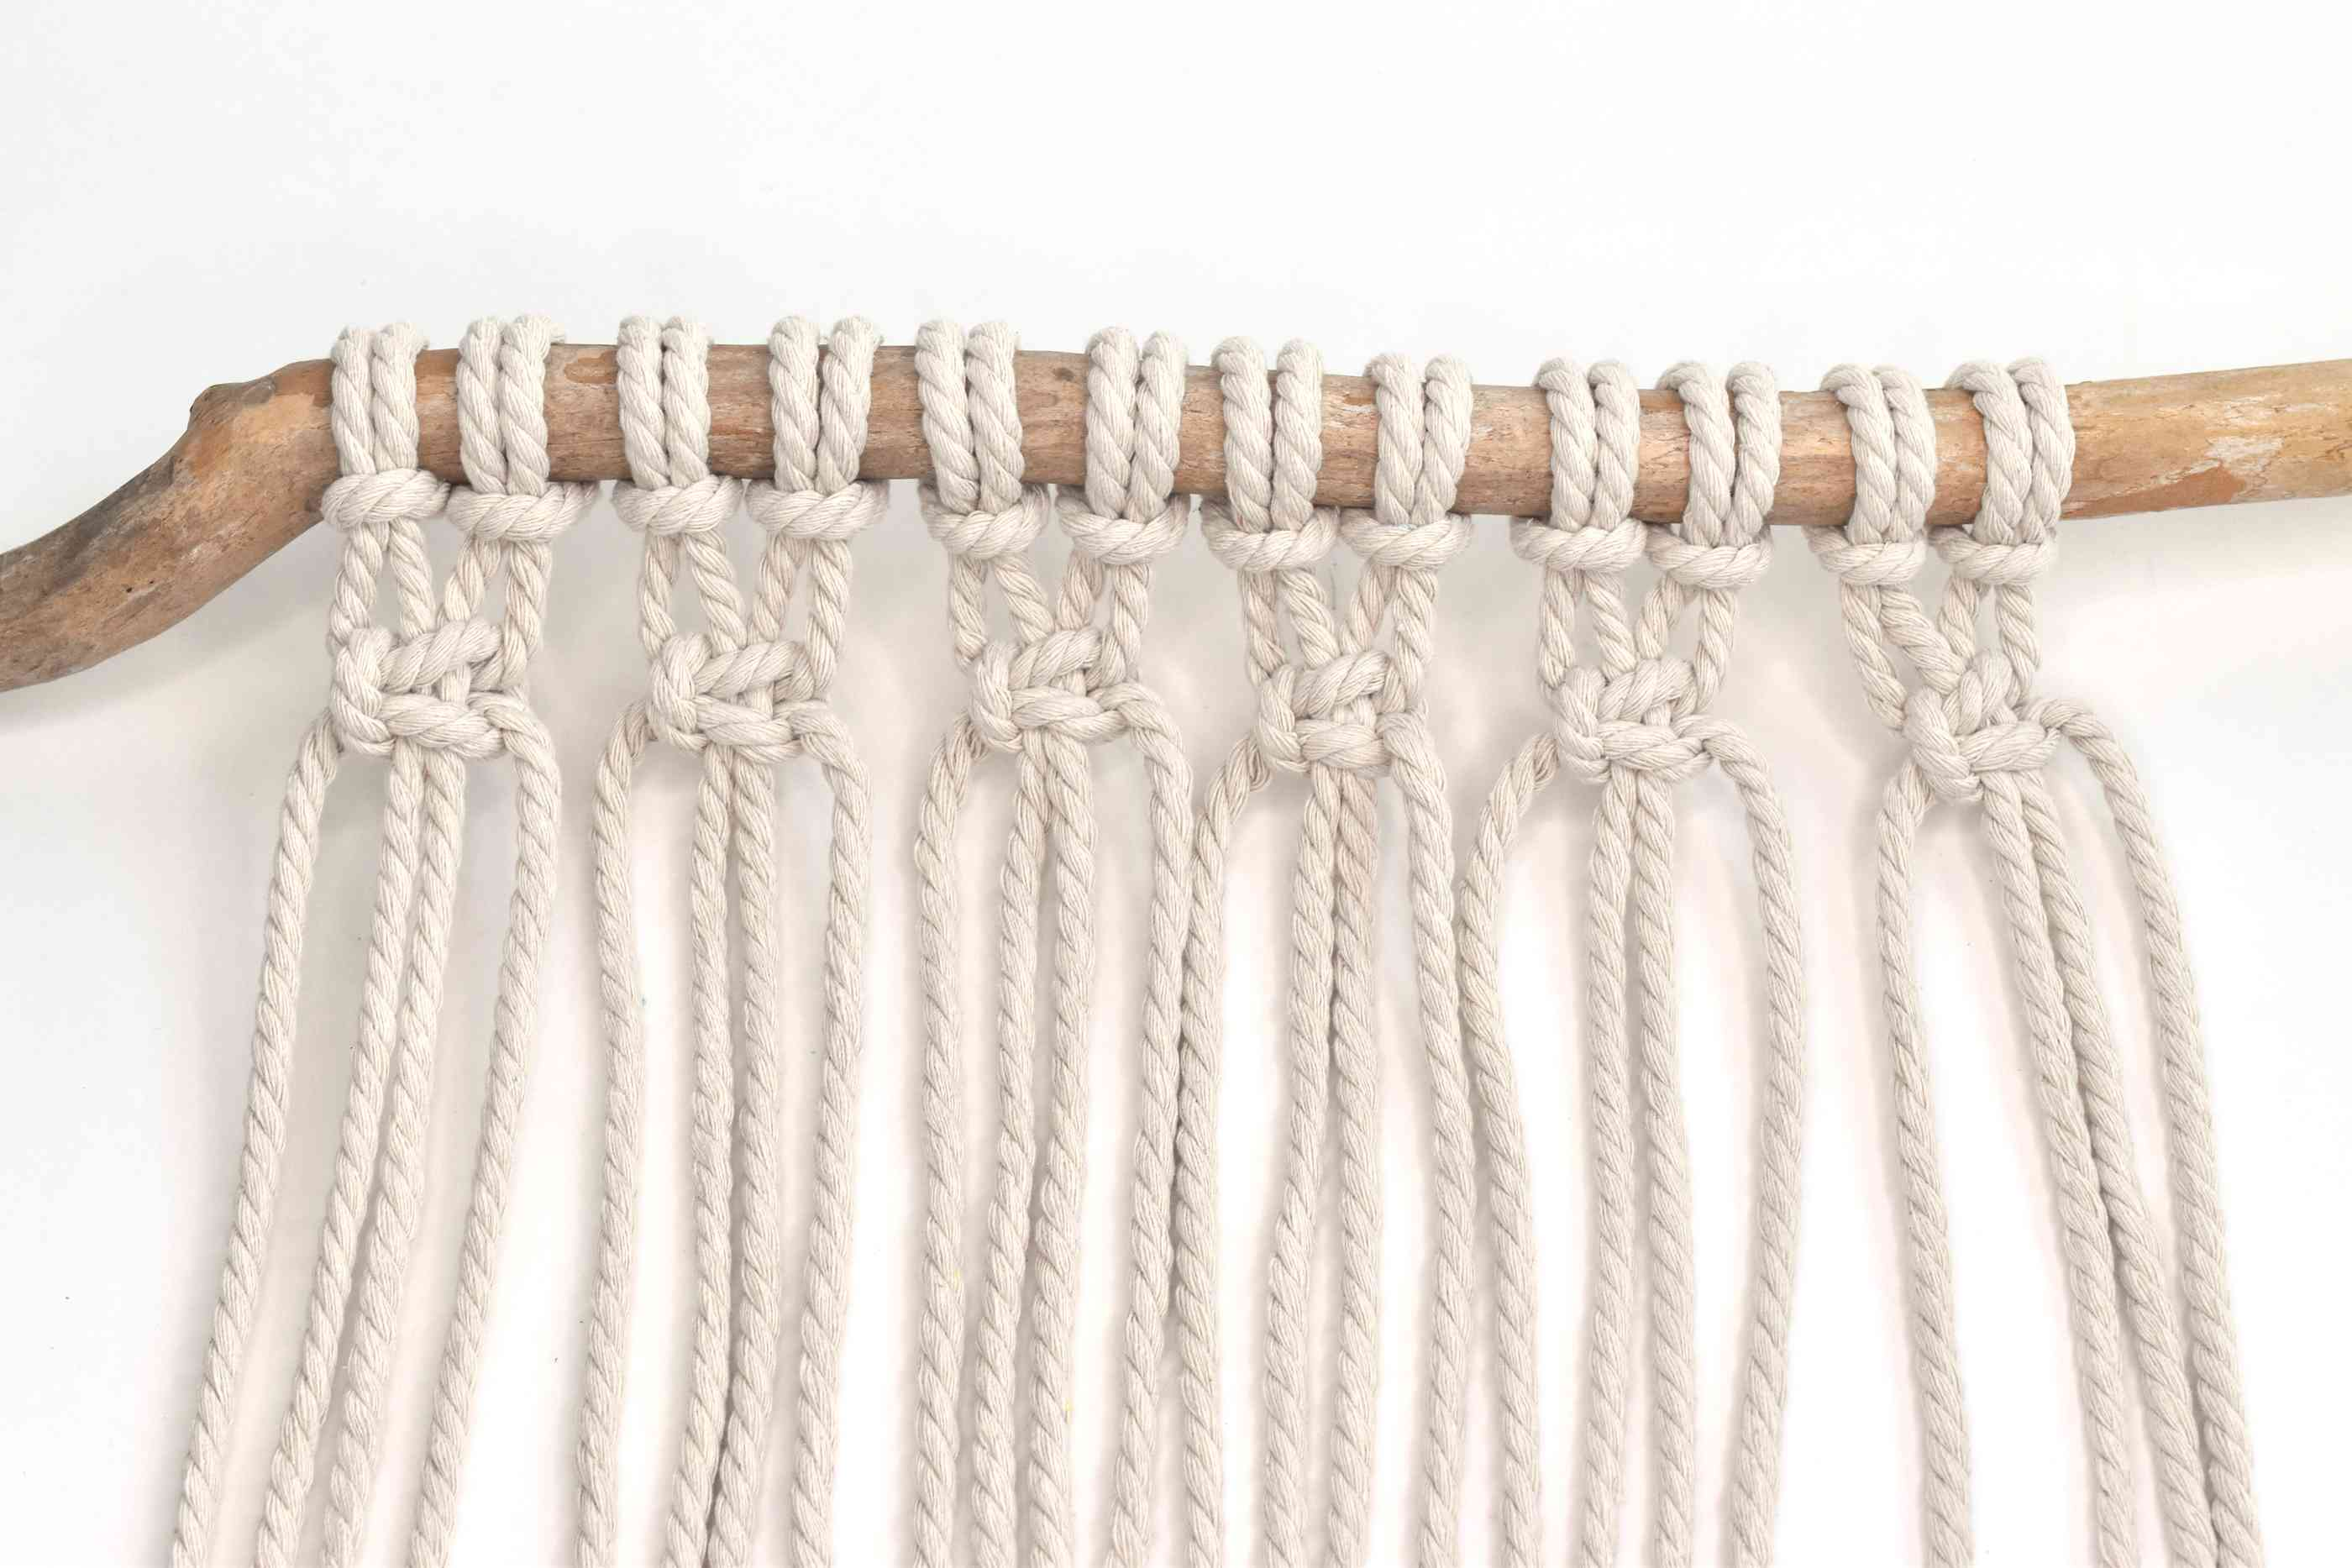 Tie left-facing square knots across all the ropes